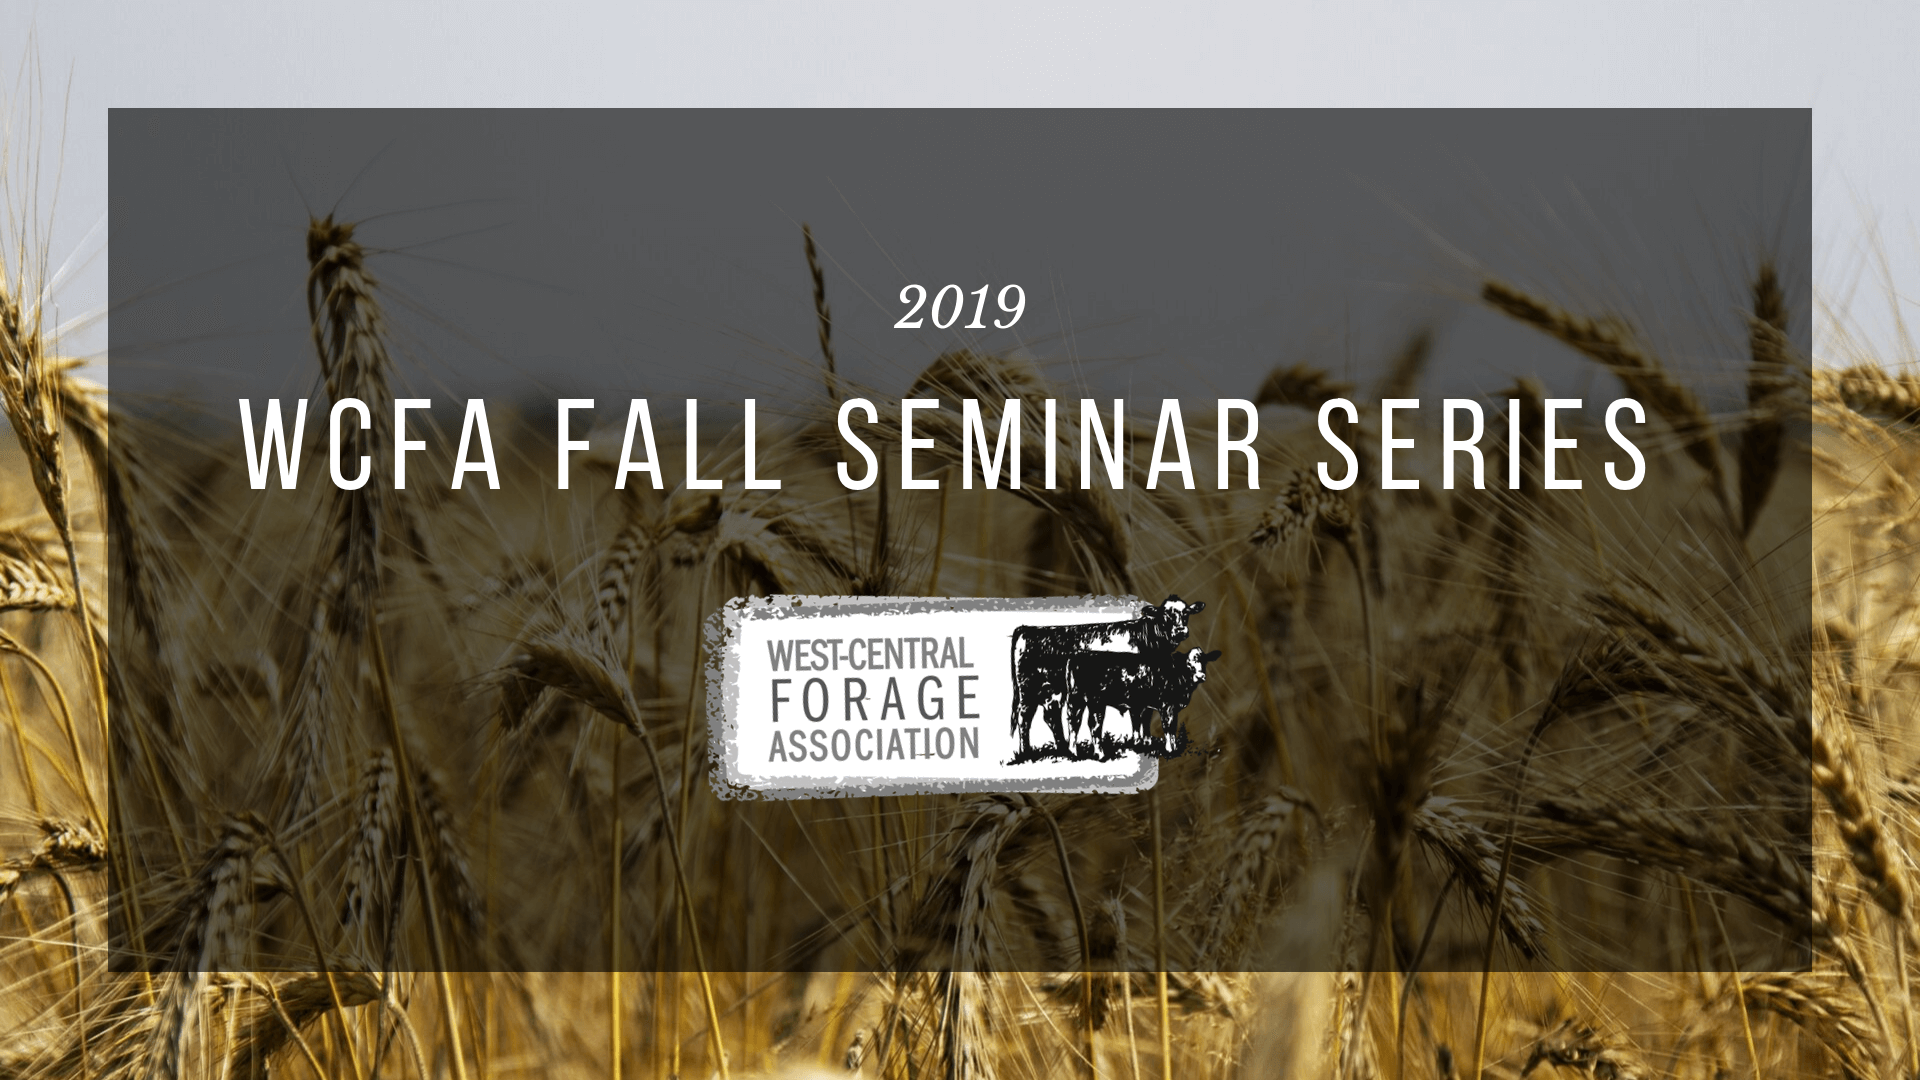 WCFA Fall Seminar Series.png